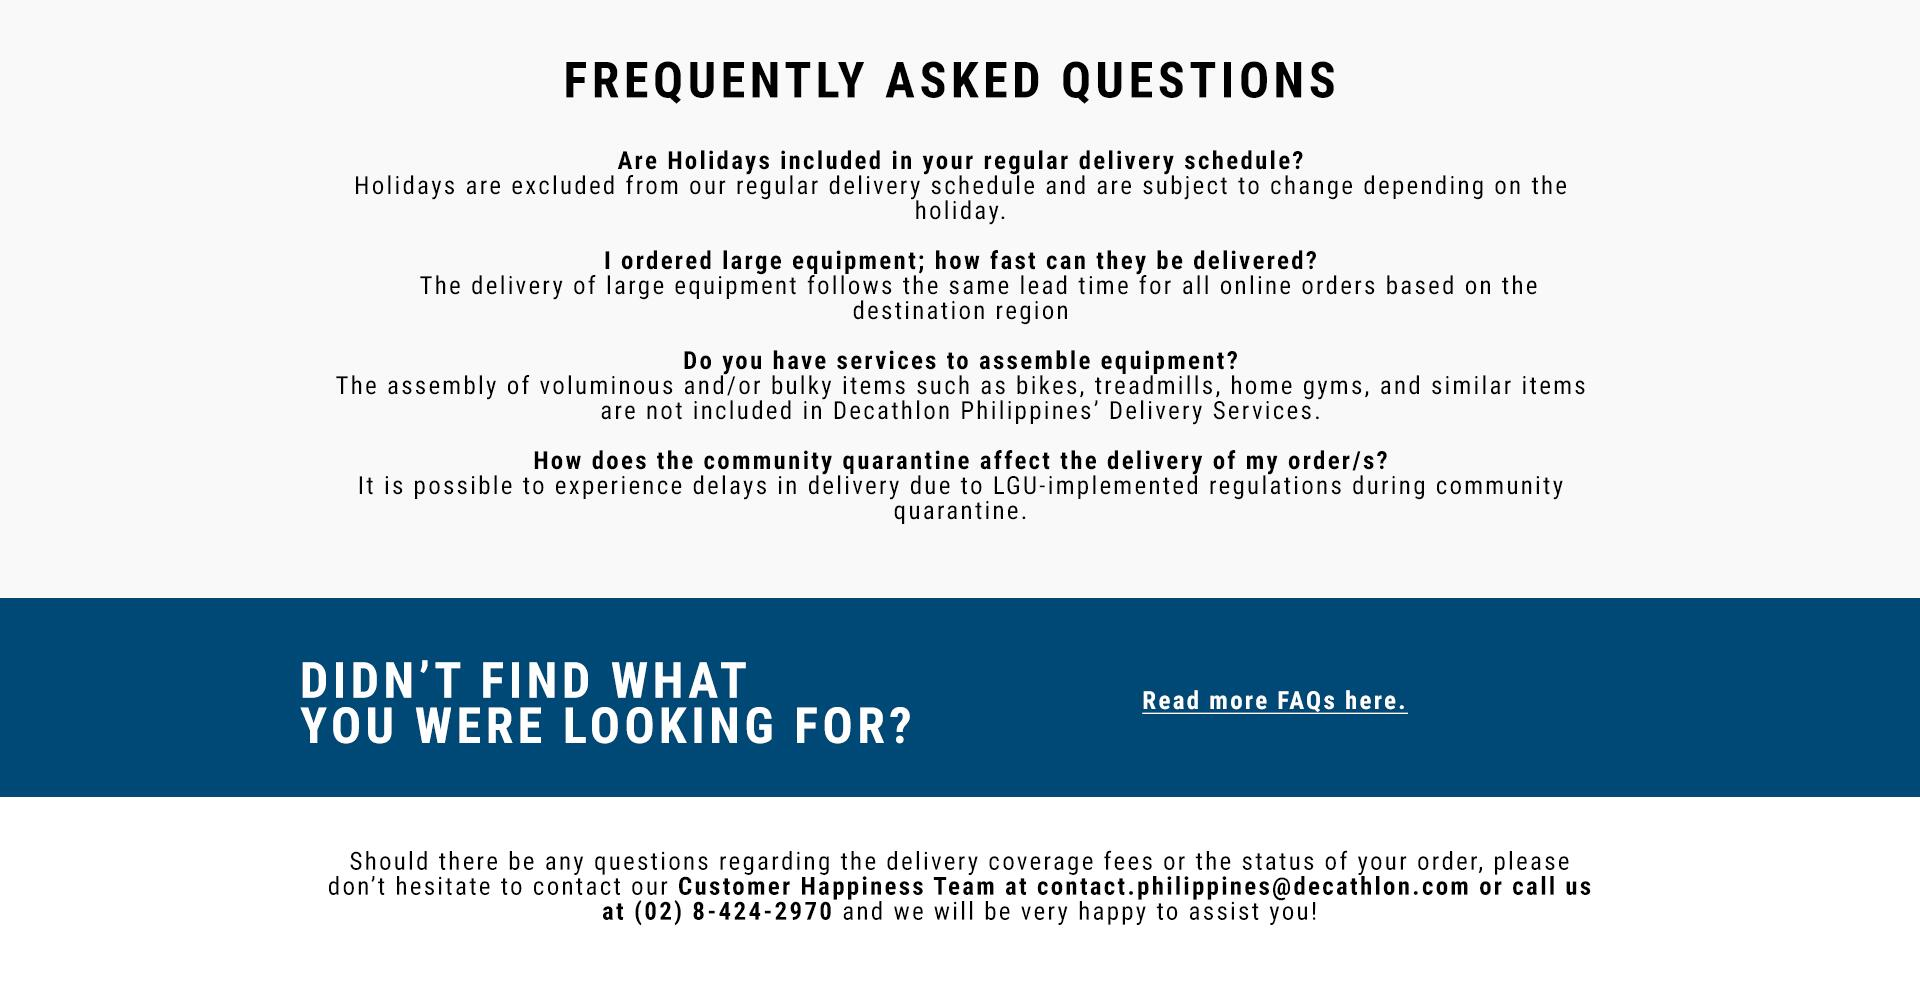 Decathlon Philippines Delivery FAQs